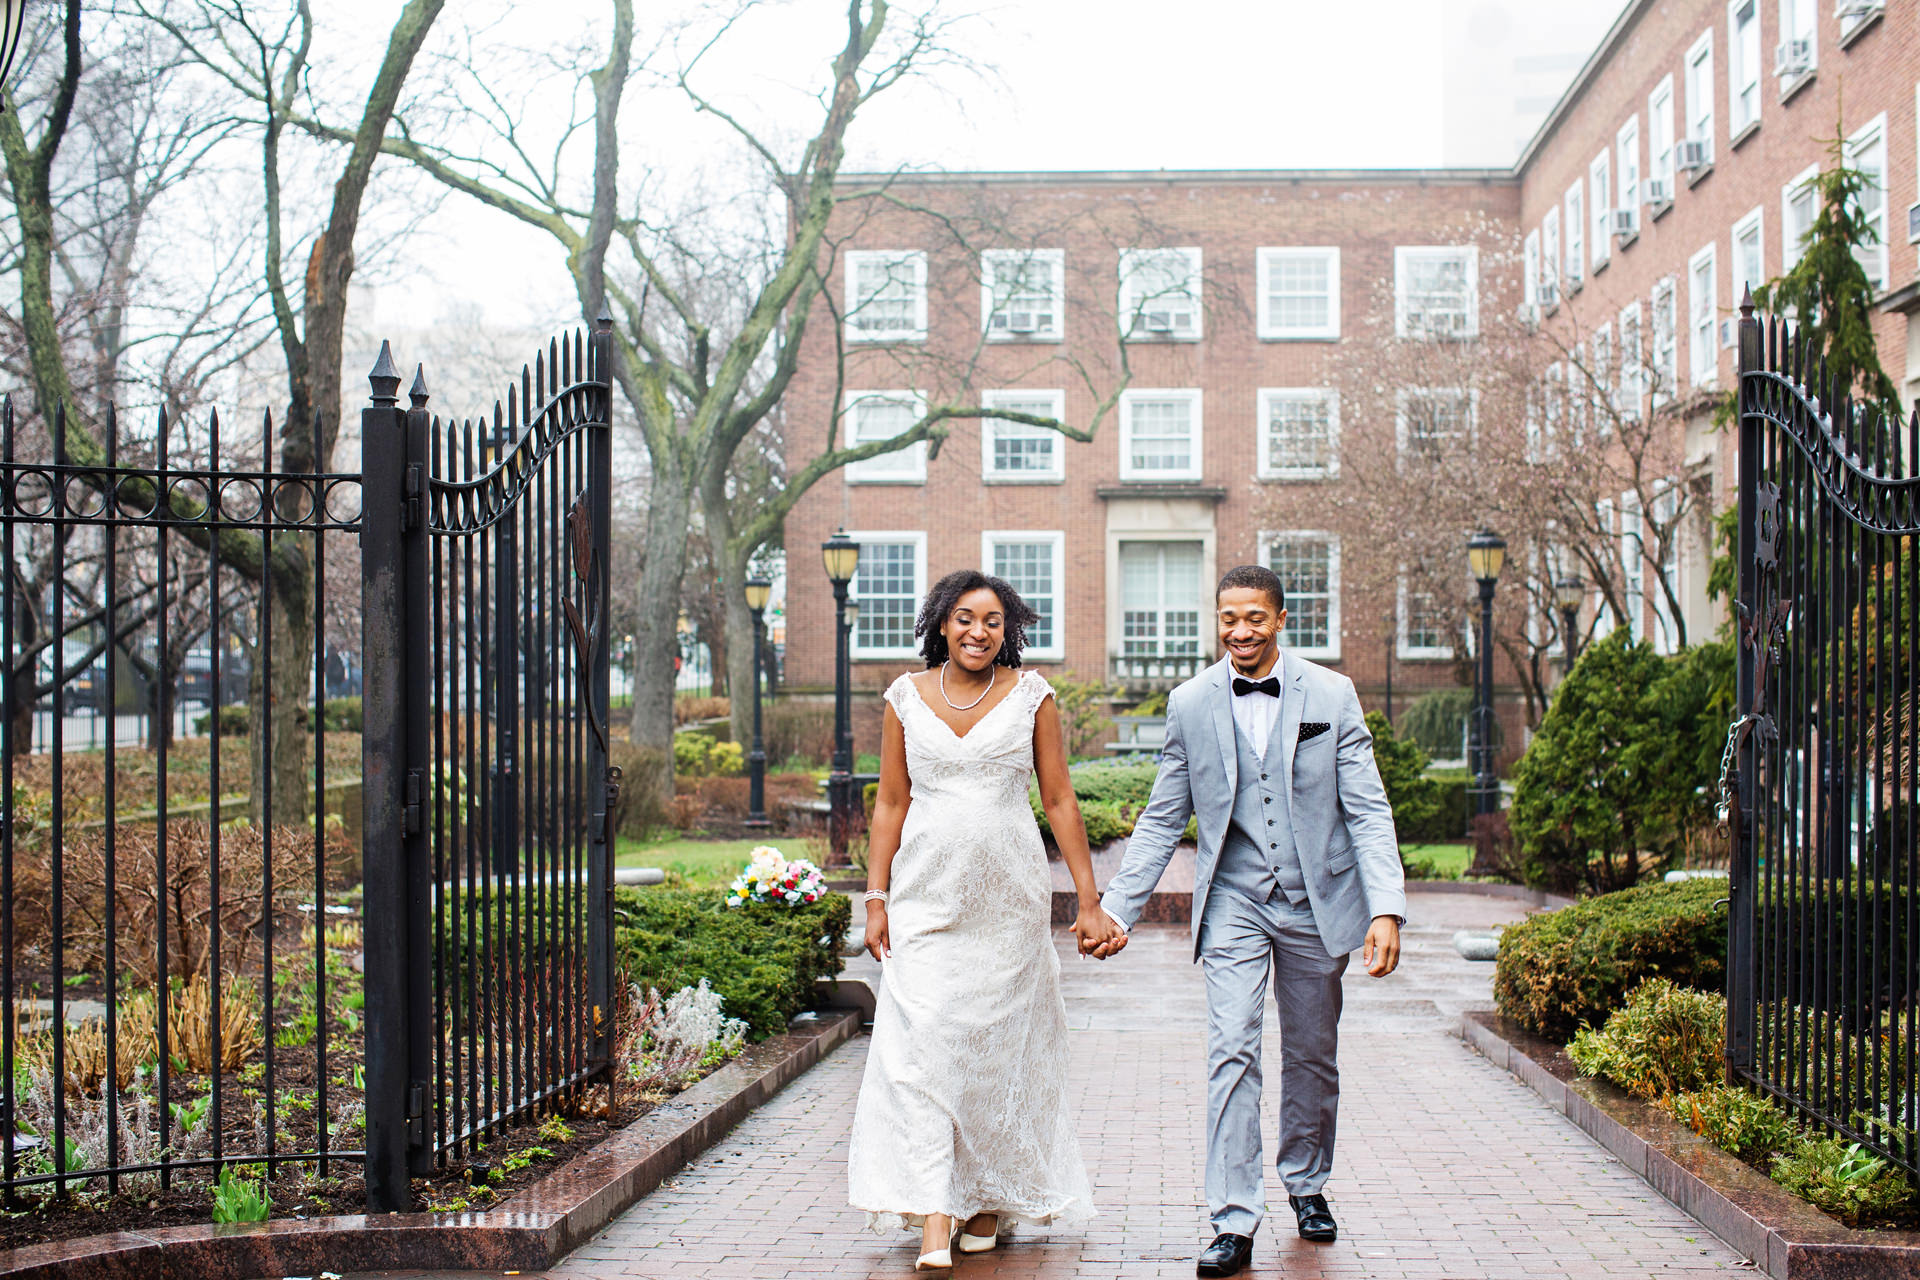 Queens Borough Hall Gardens Couple Wedding Portrait | The smiling couple strolls through the Queens Borough Hall garden